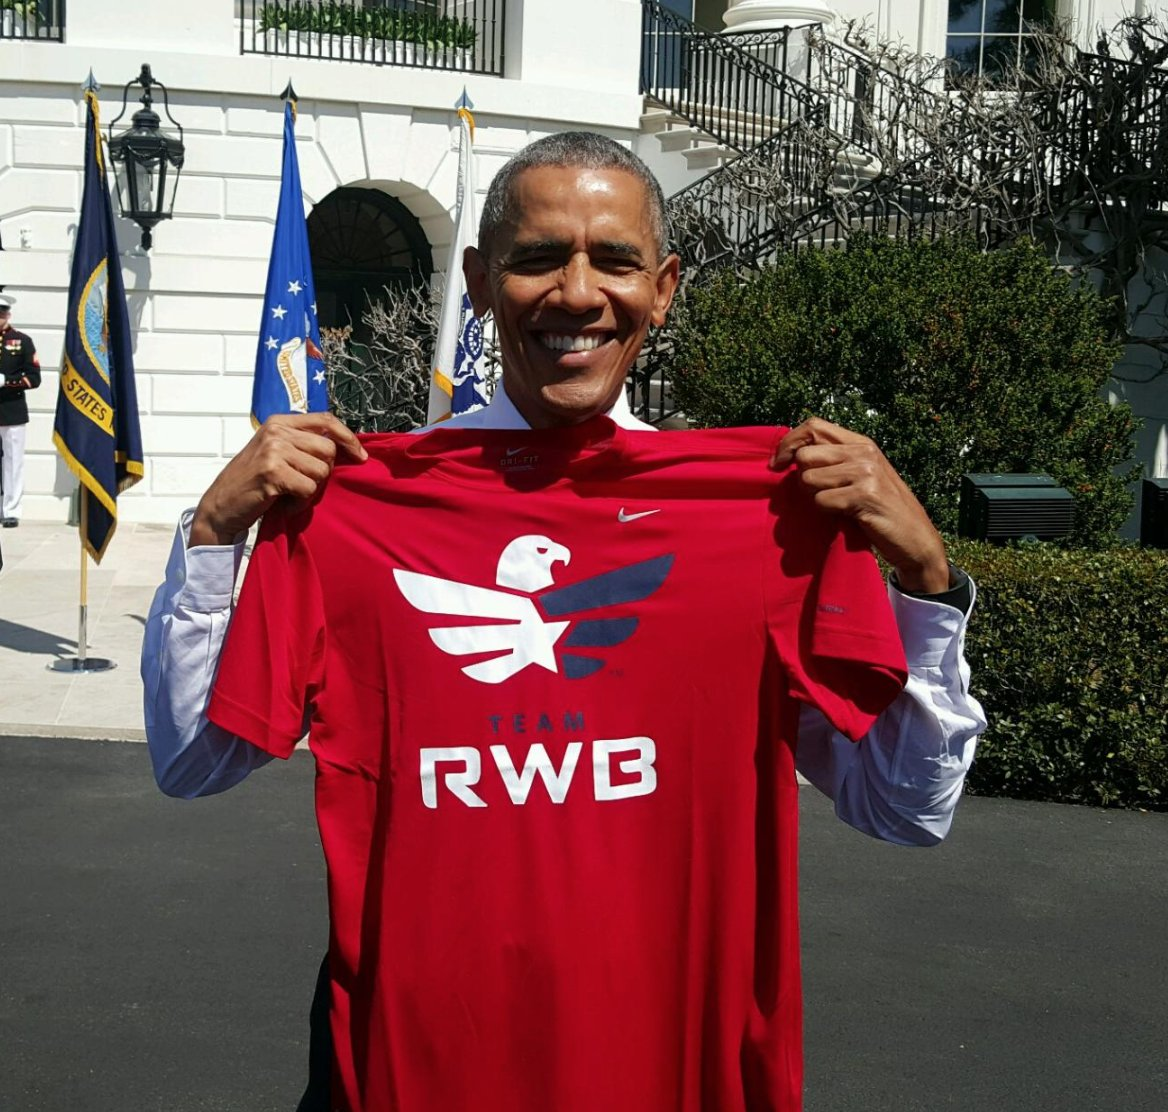 Awesome to see @POTUS rocking the Eagle!